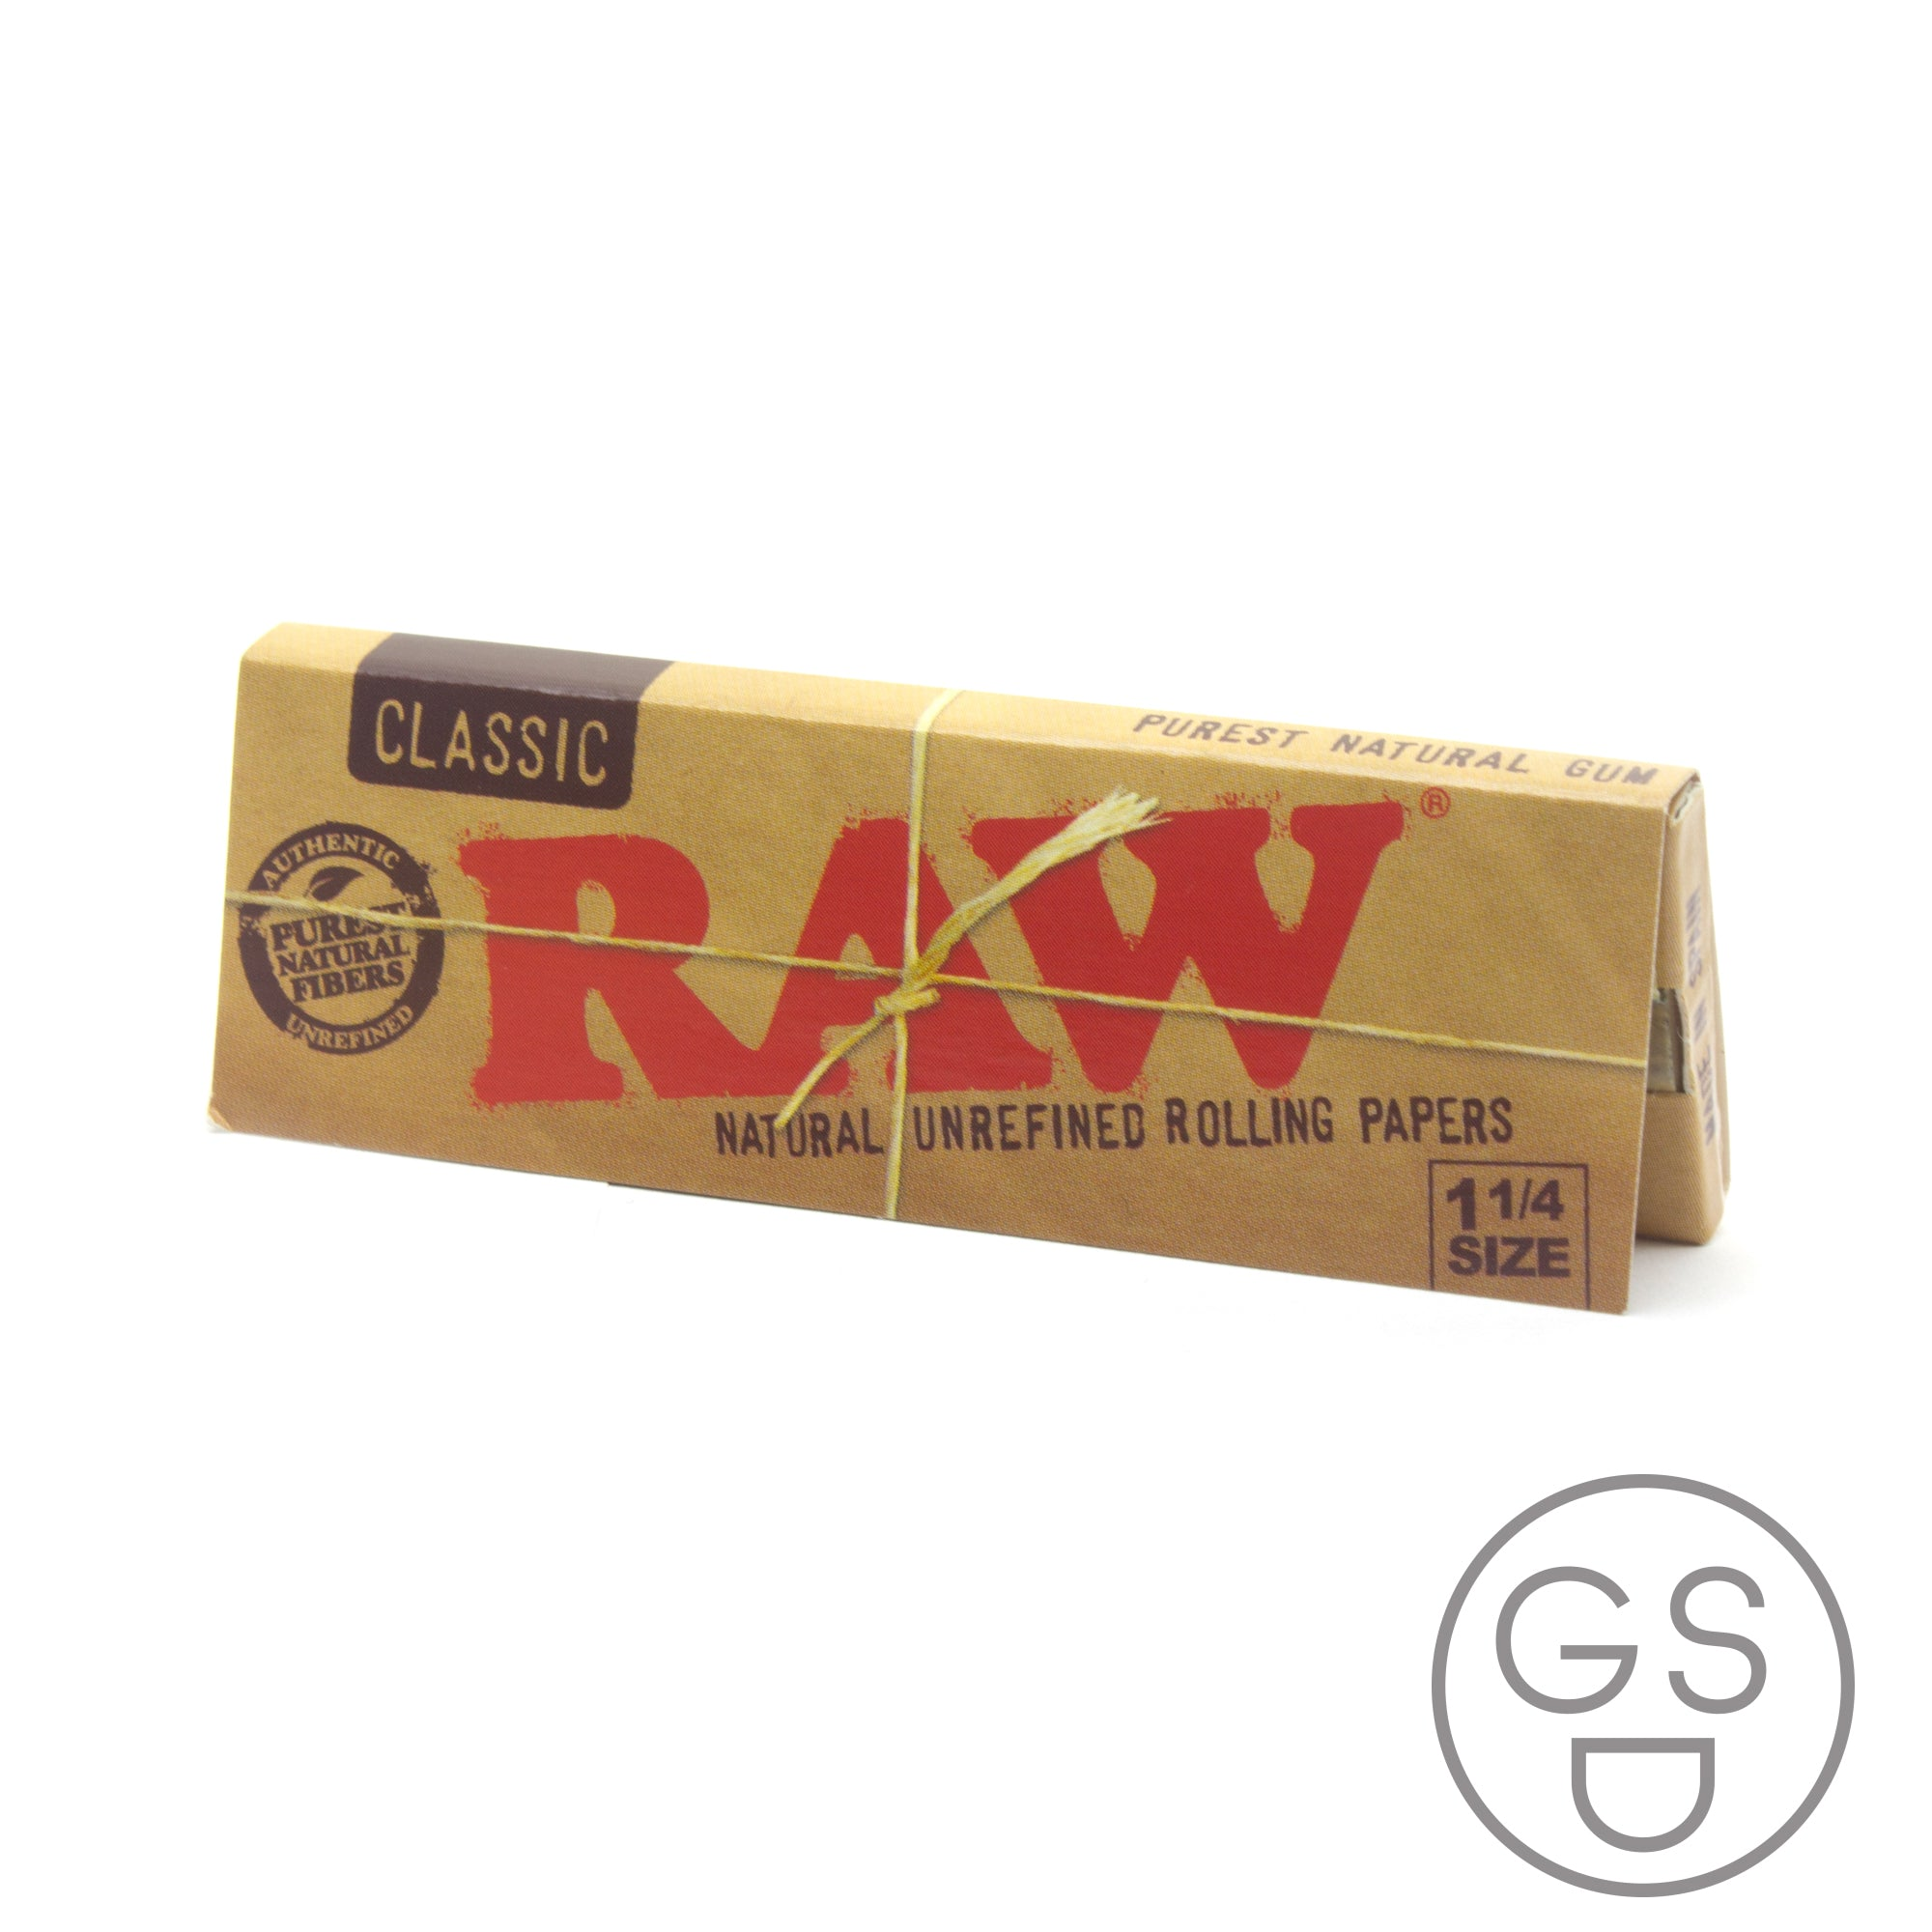 RAW 1 1/4 Unrefined Papers